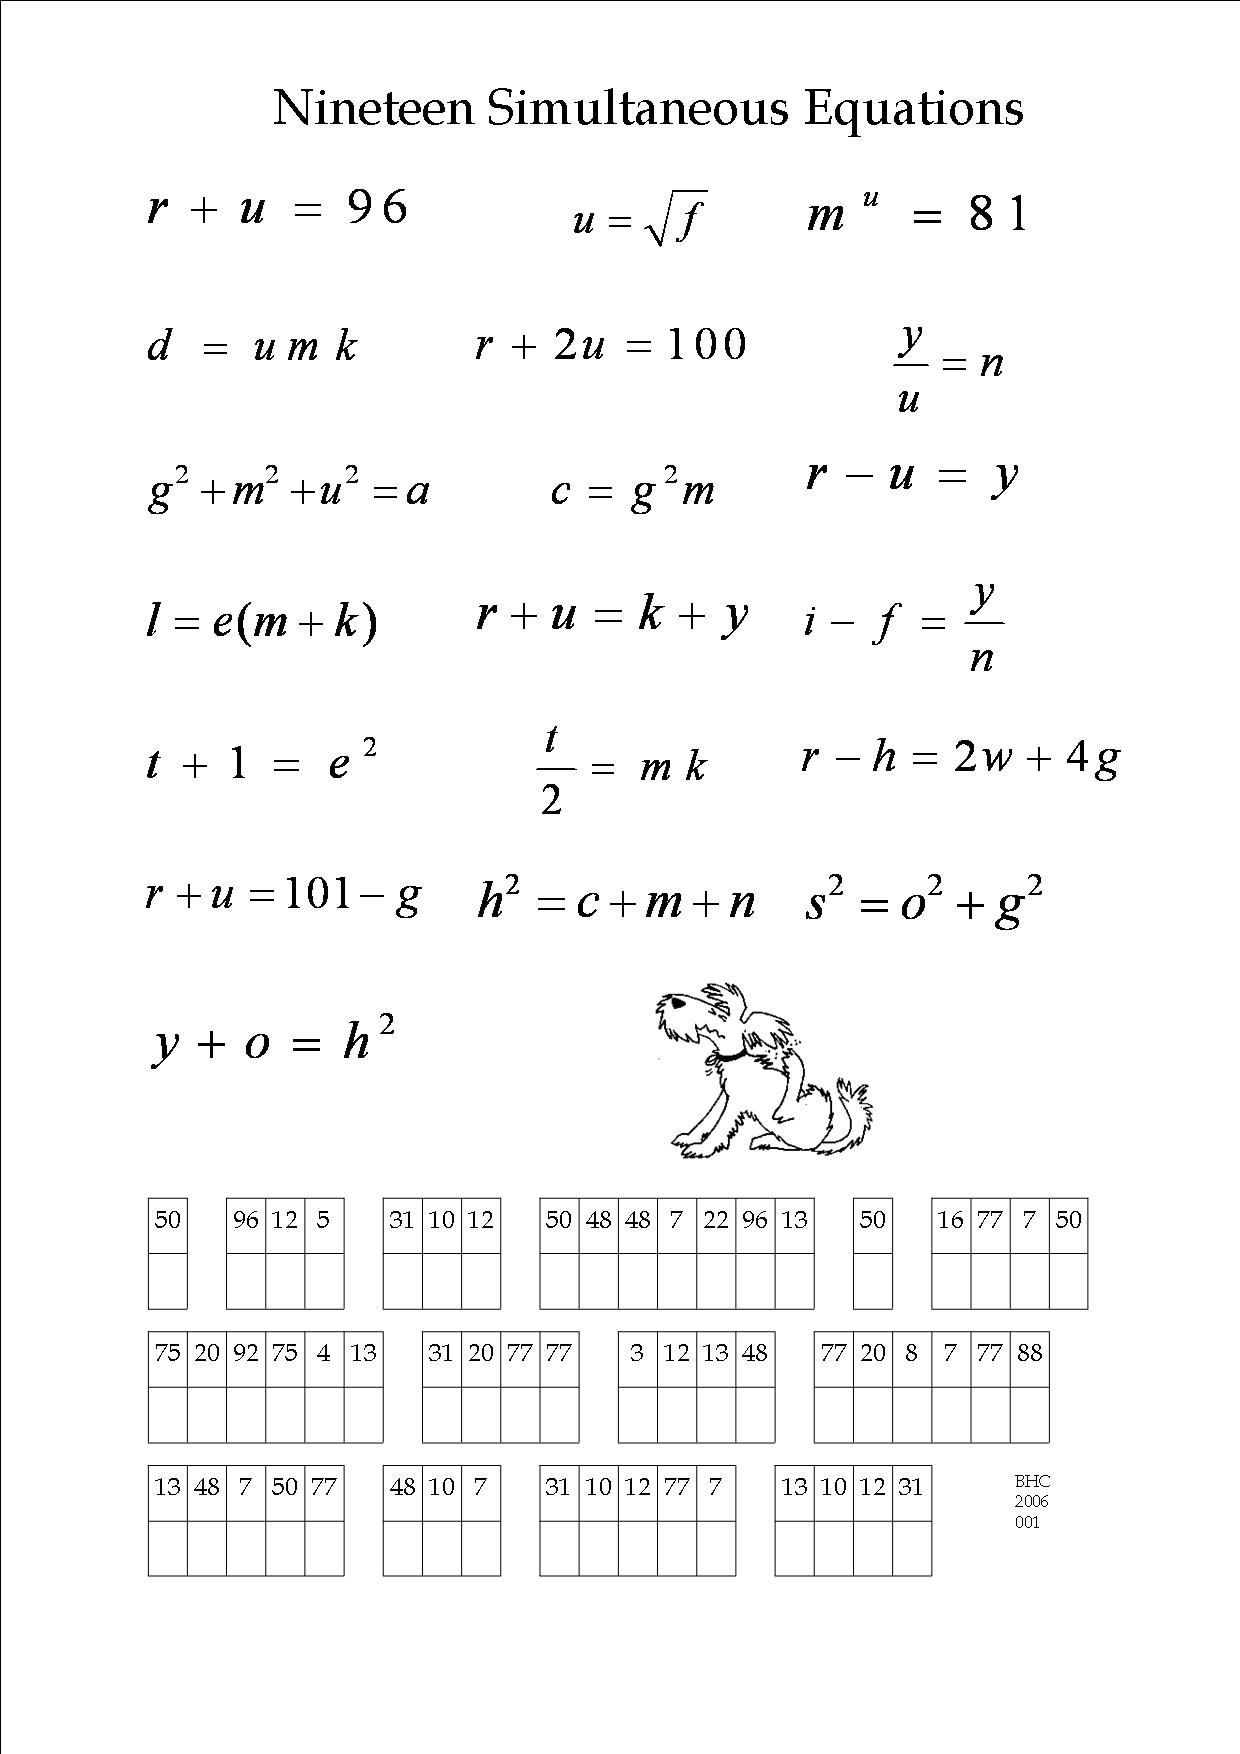 6th Grade Math Puzzles Pdf Math Fun Worksheets Pdf